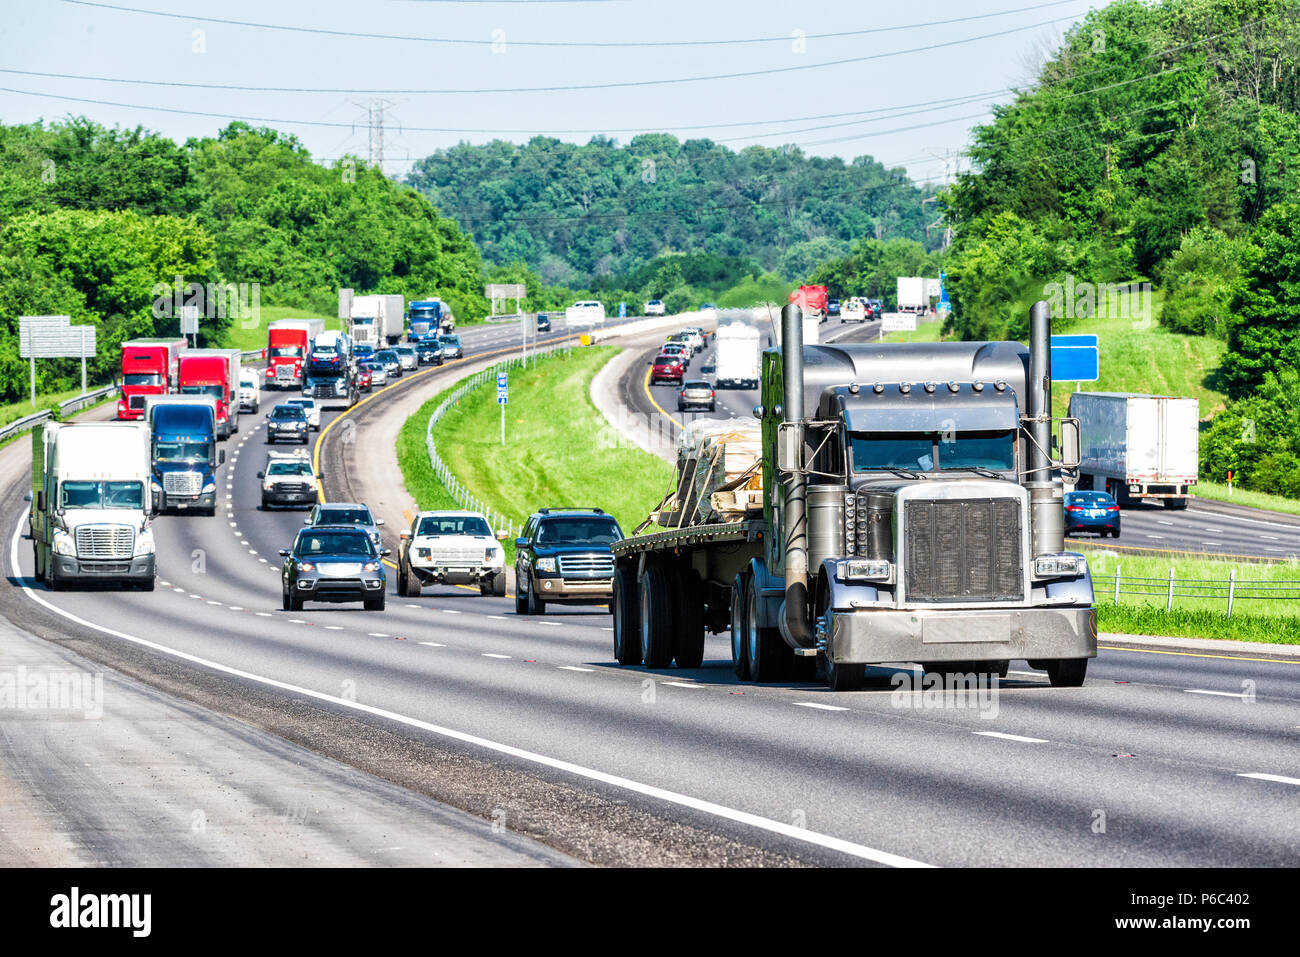 An interstate highway in eastern Tennessee bears a heavy load of traffic. Note: All logos and identifying marks have been removed from all vehicles.   - Stock Image